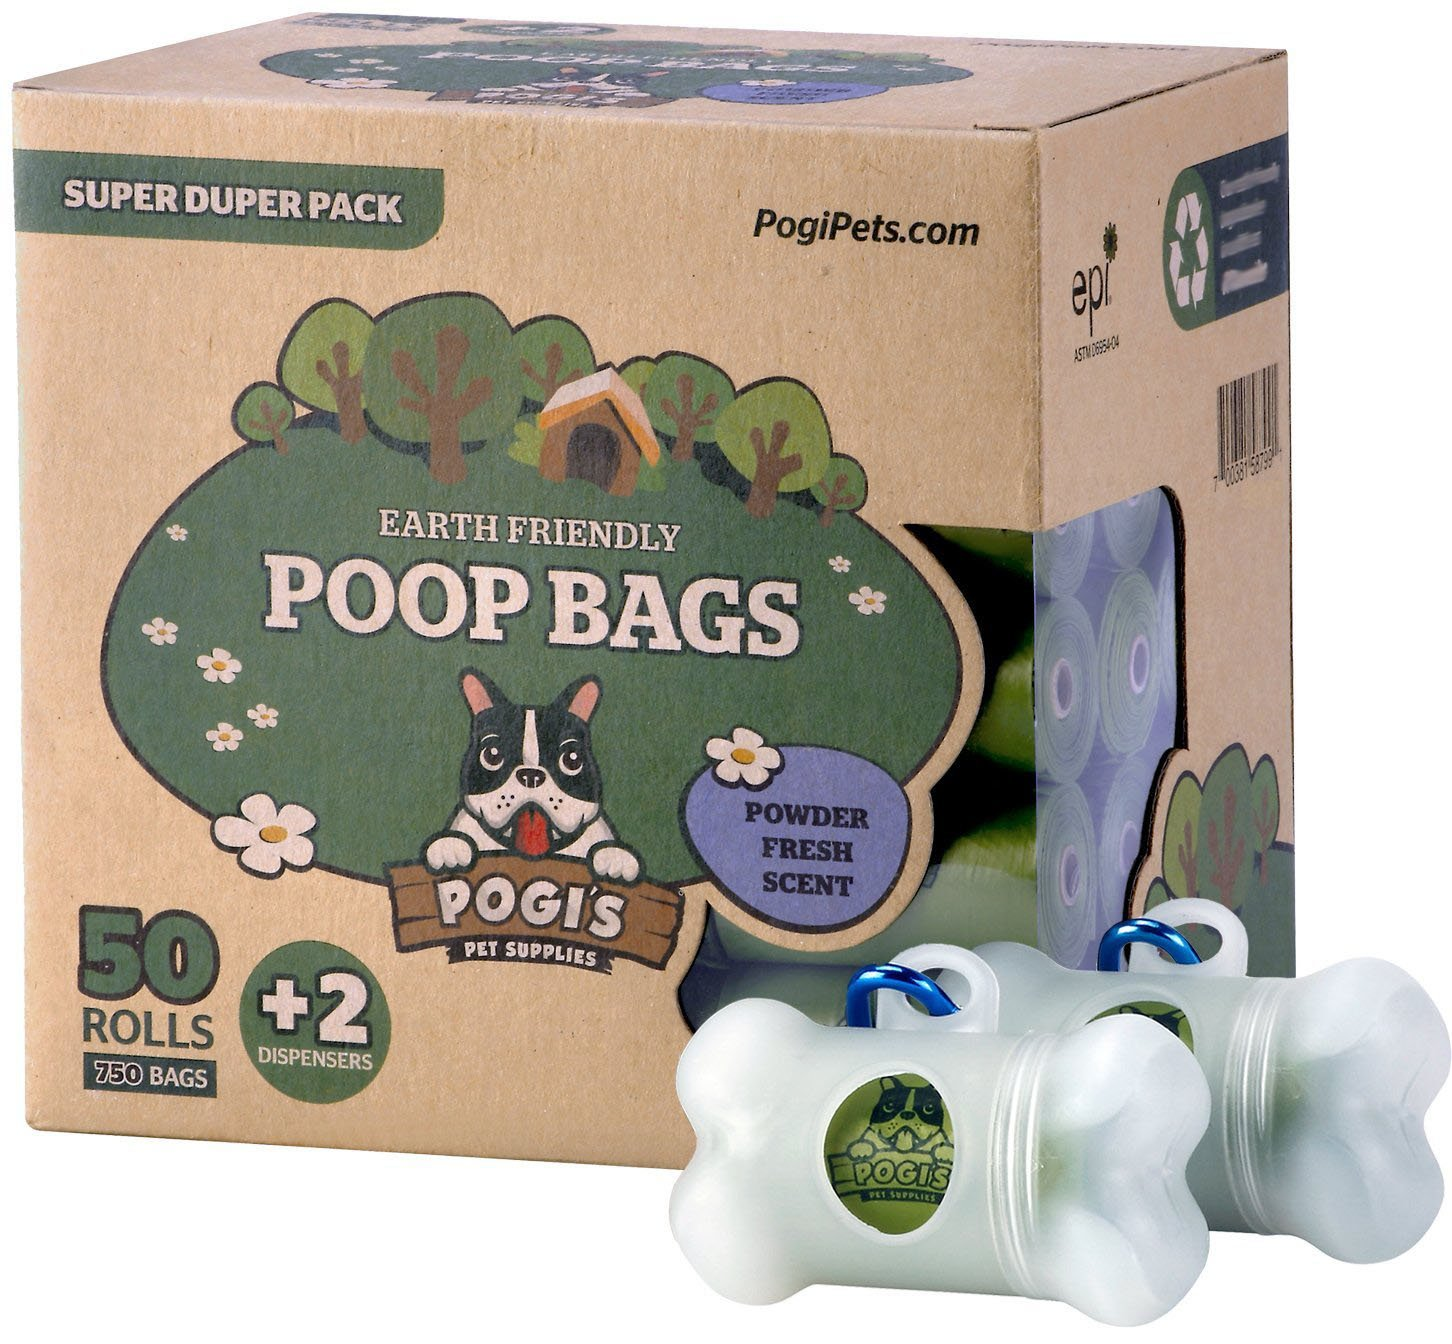 Pogis Poop Bags - 50 Rolls (750 Bags) +2 Dispensers - Earth-